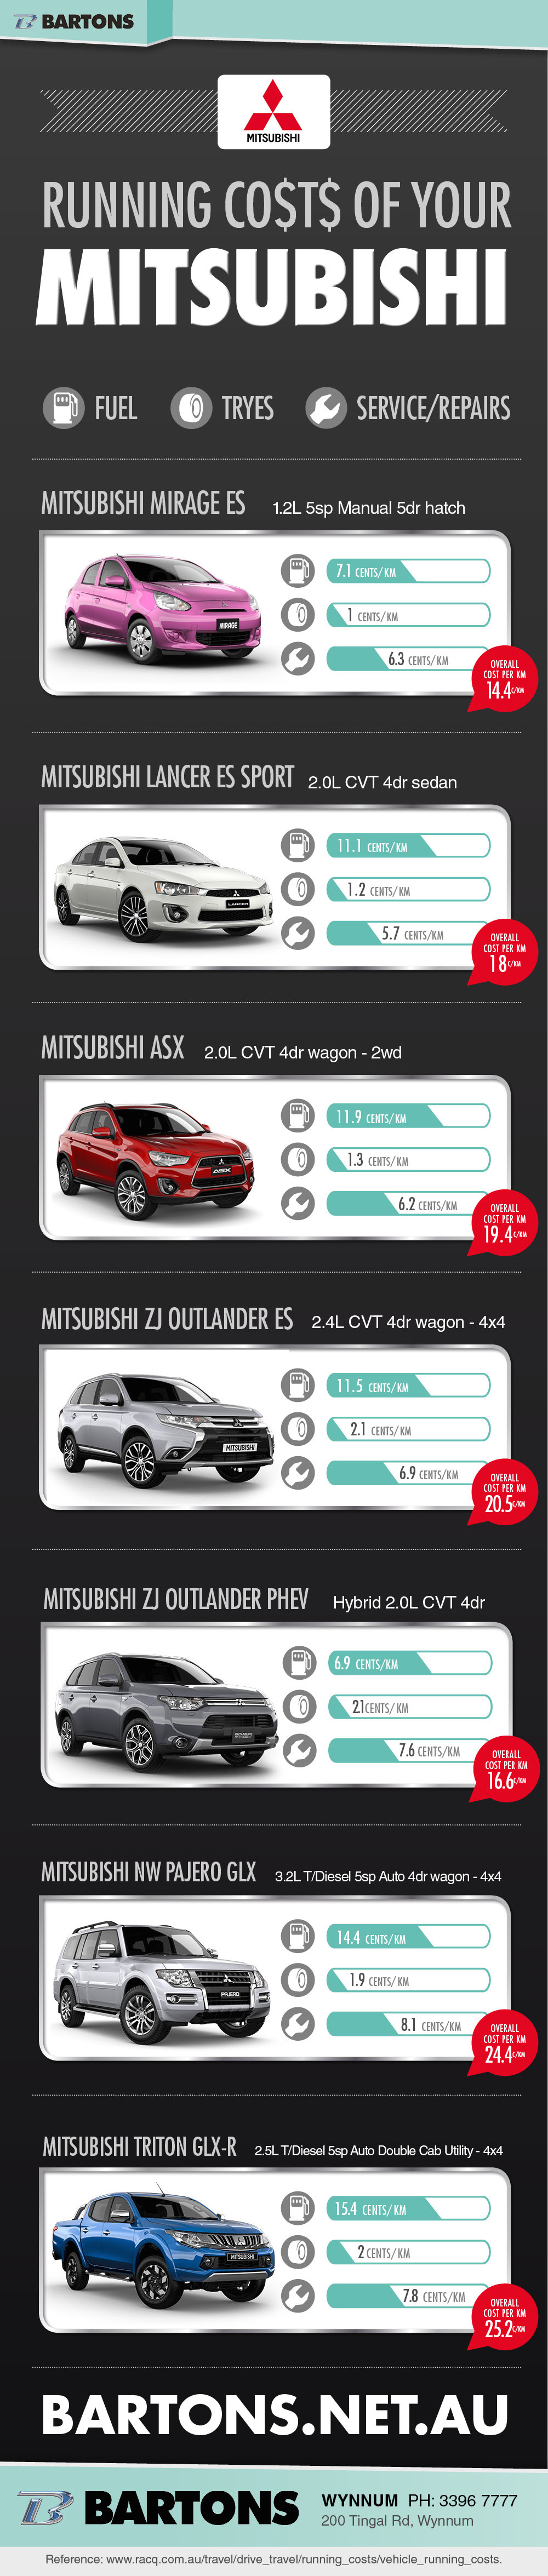 The Running Costs of Your Mitsubishi Infographic